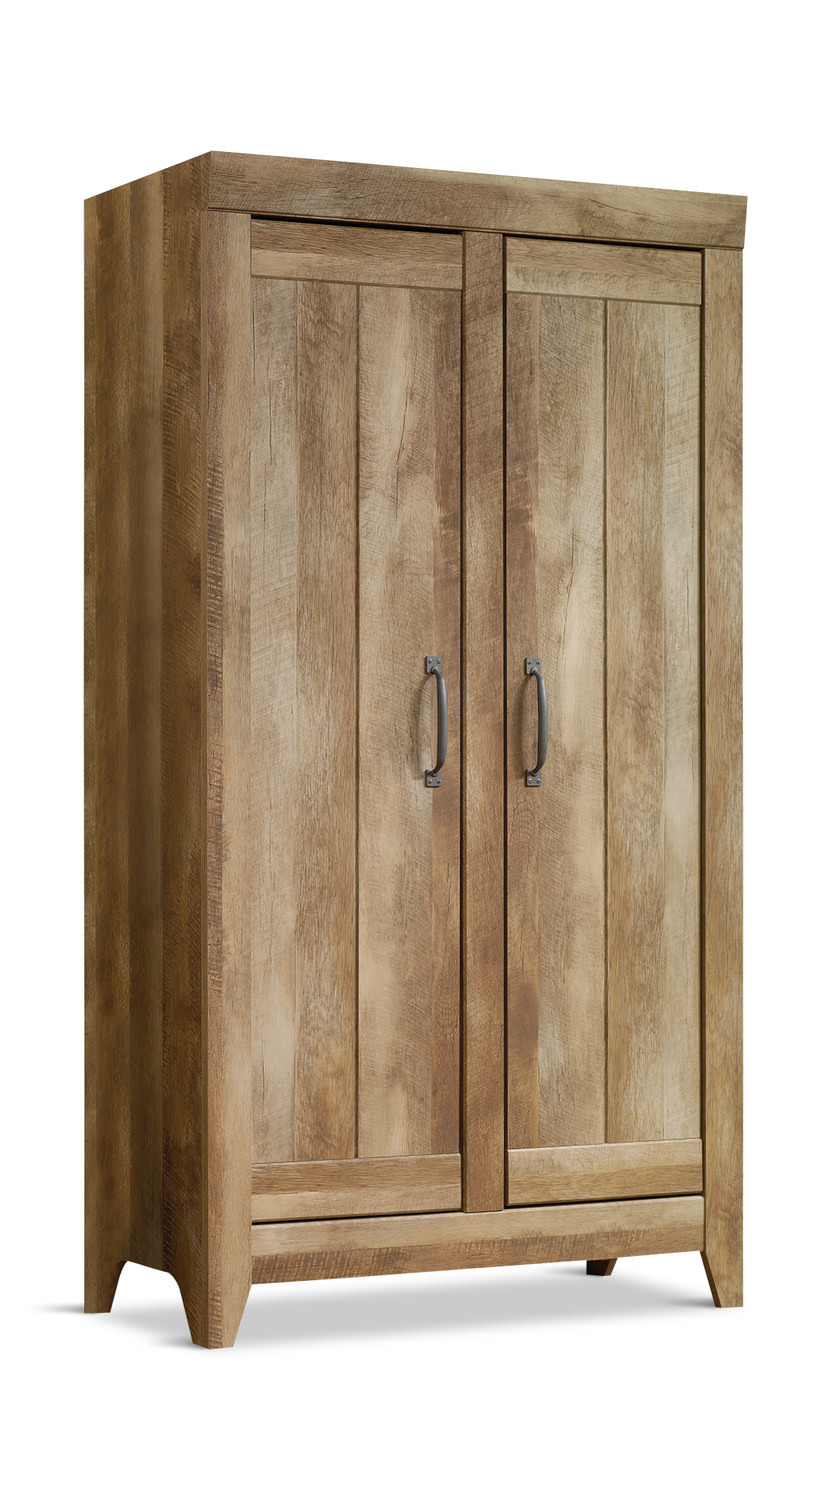 Wood Storage Cabinets with Doors Inspirational Wide Adept Storage Cabinet